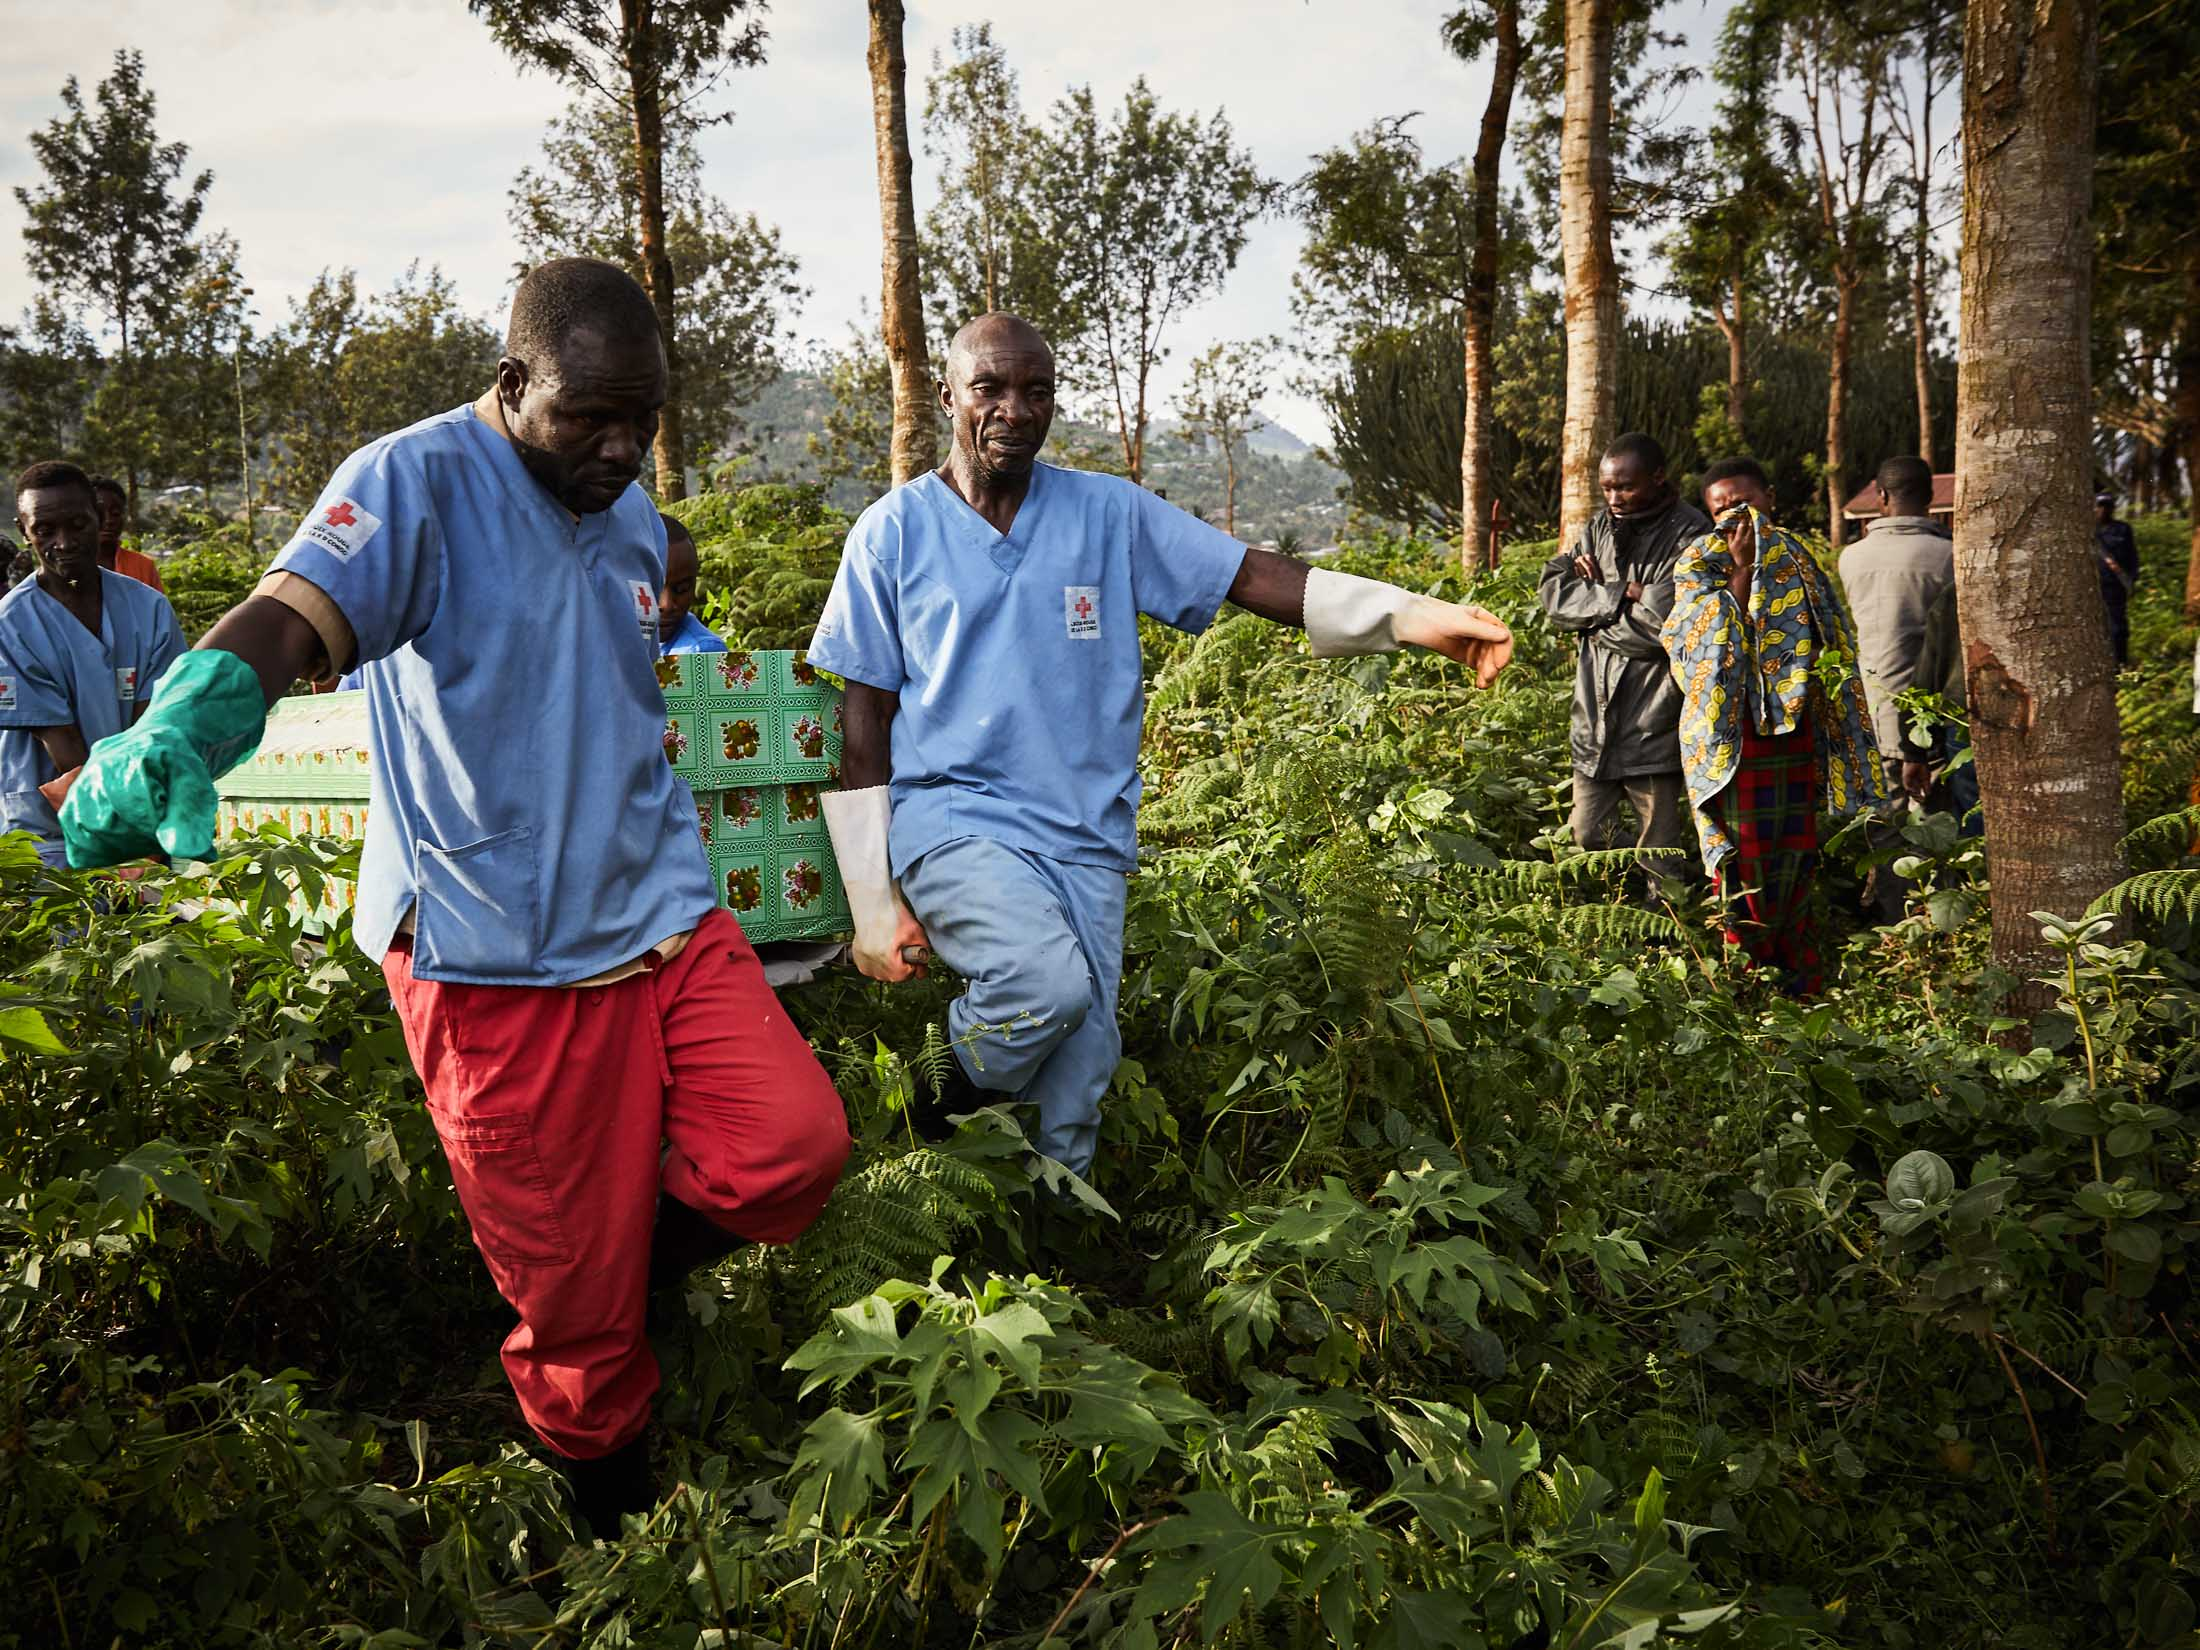 Health workers carry the coffin of Mumbere Mboko, a victim of the Ebola virus. Kitatumba cemetery, Butembo.